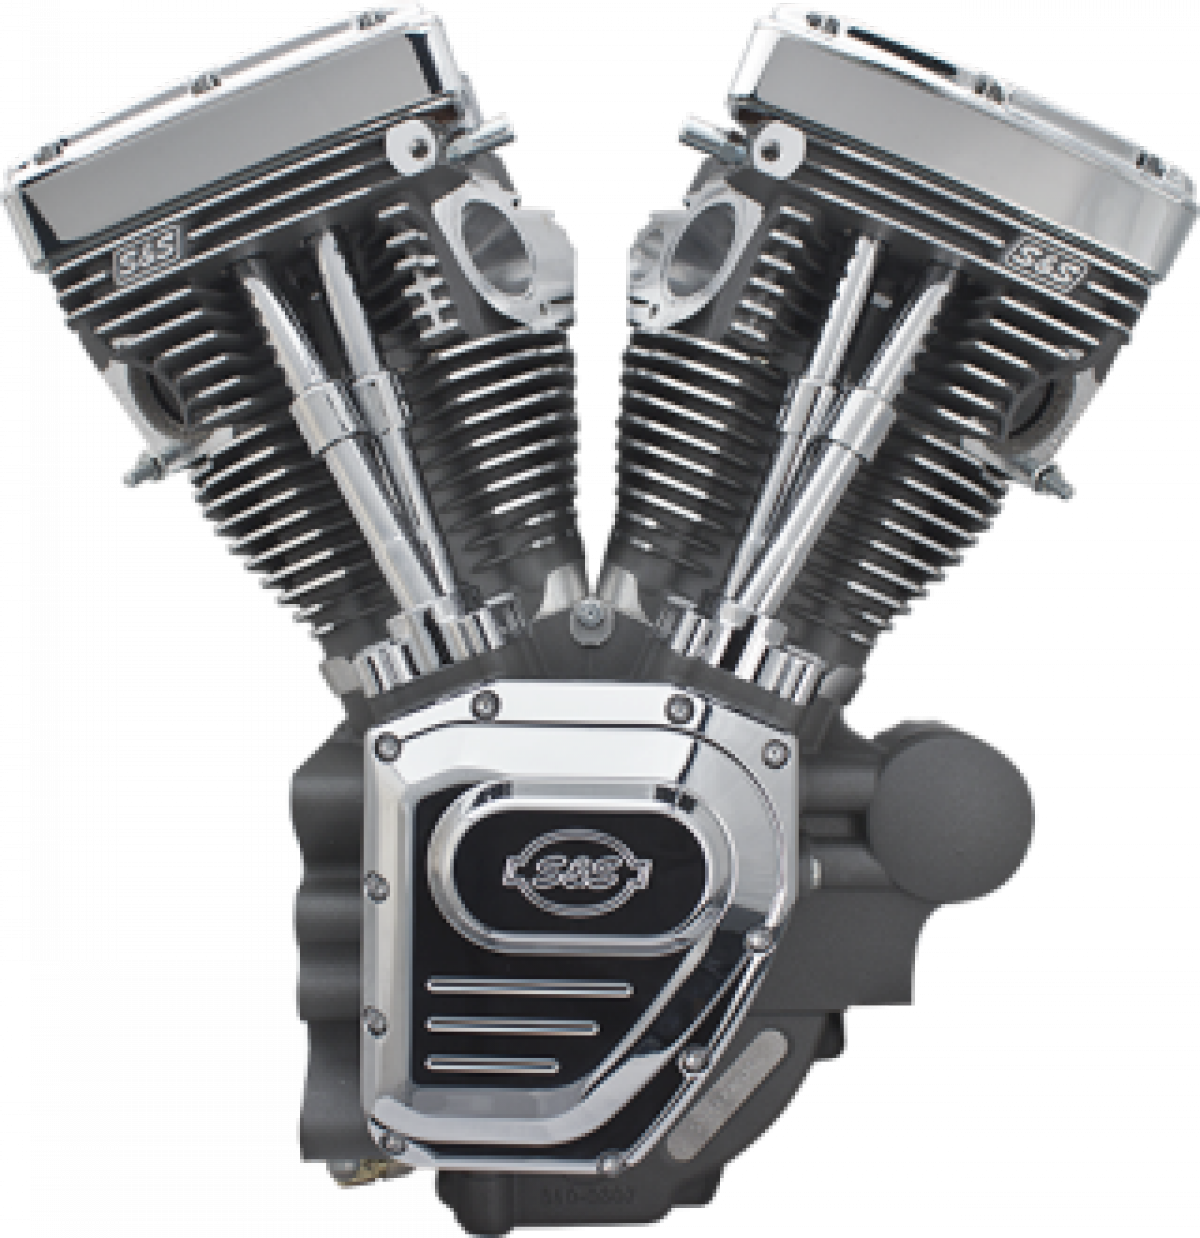 Engine PNG - 19168